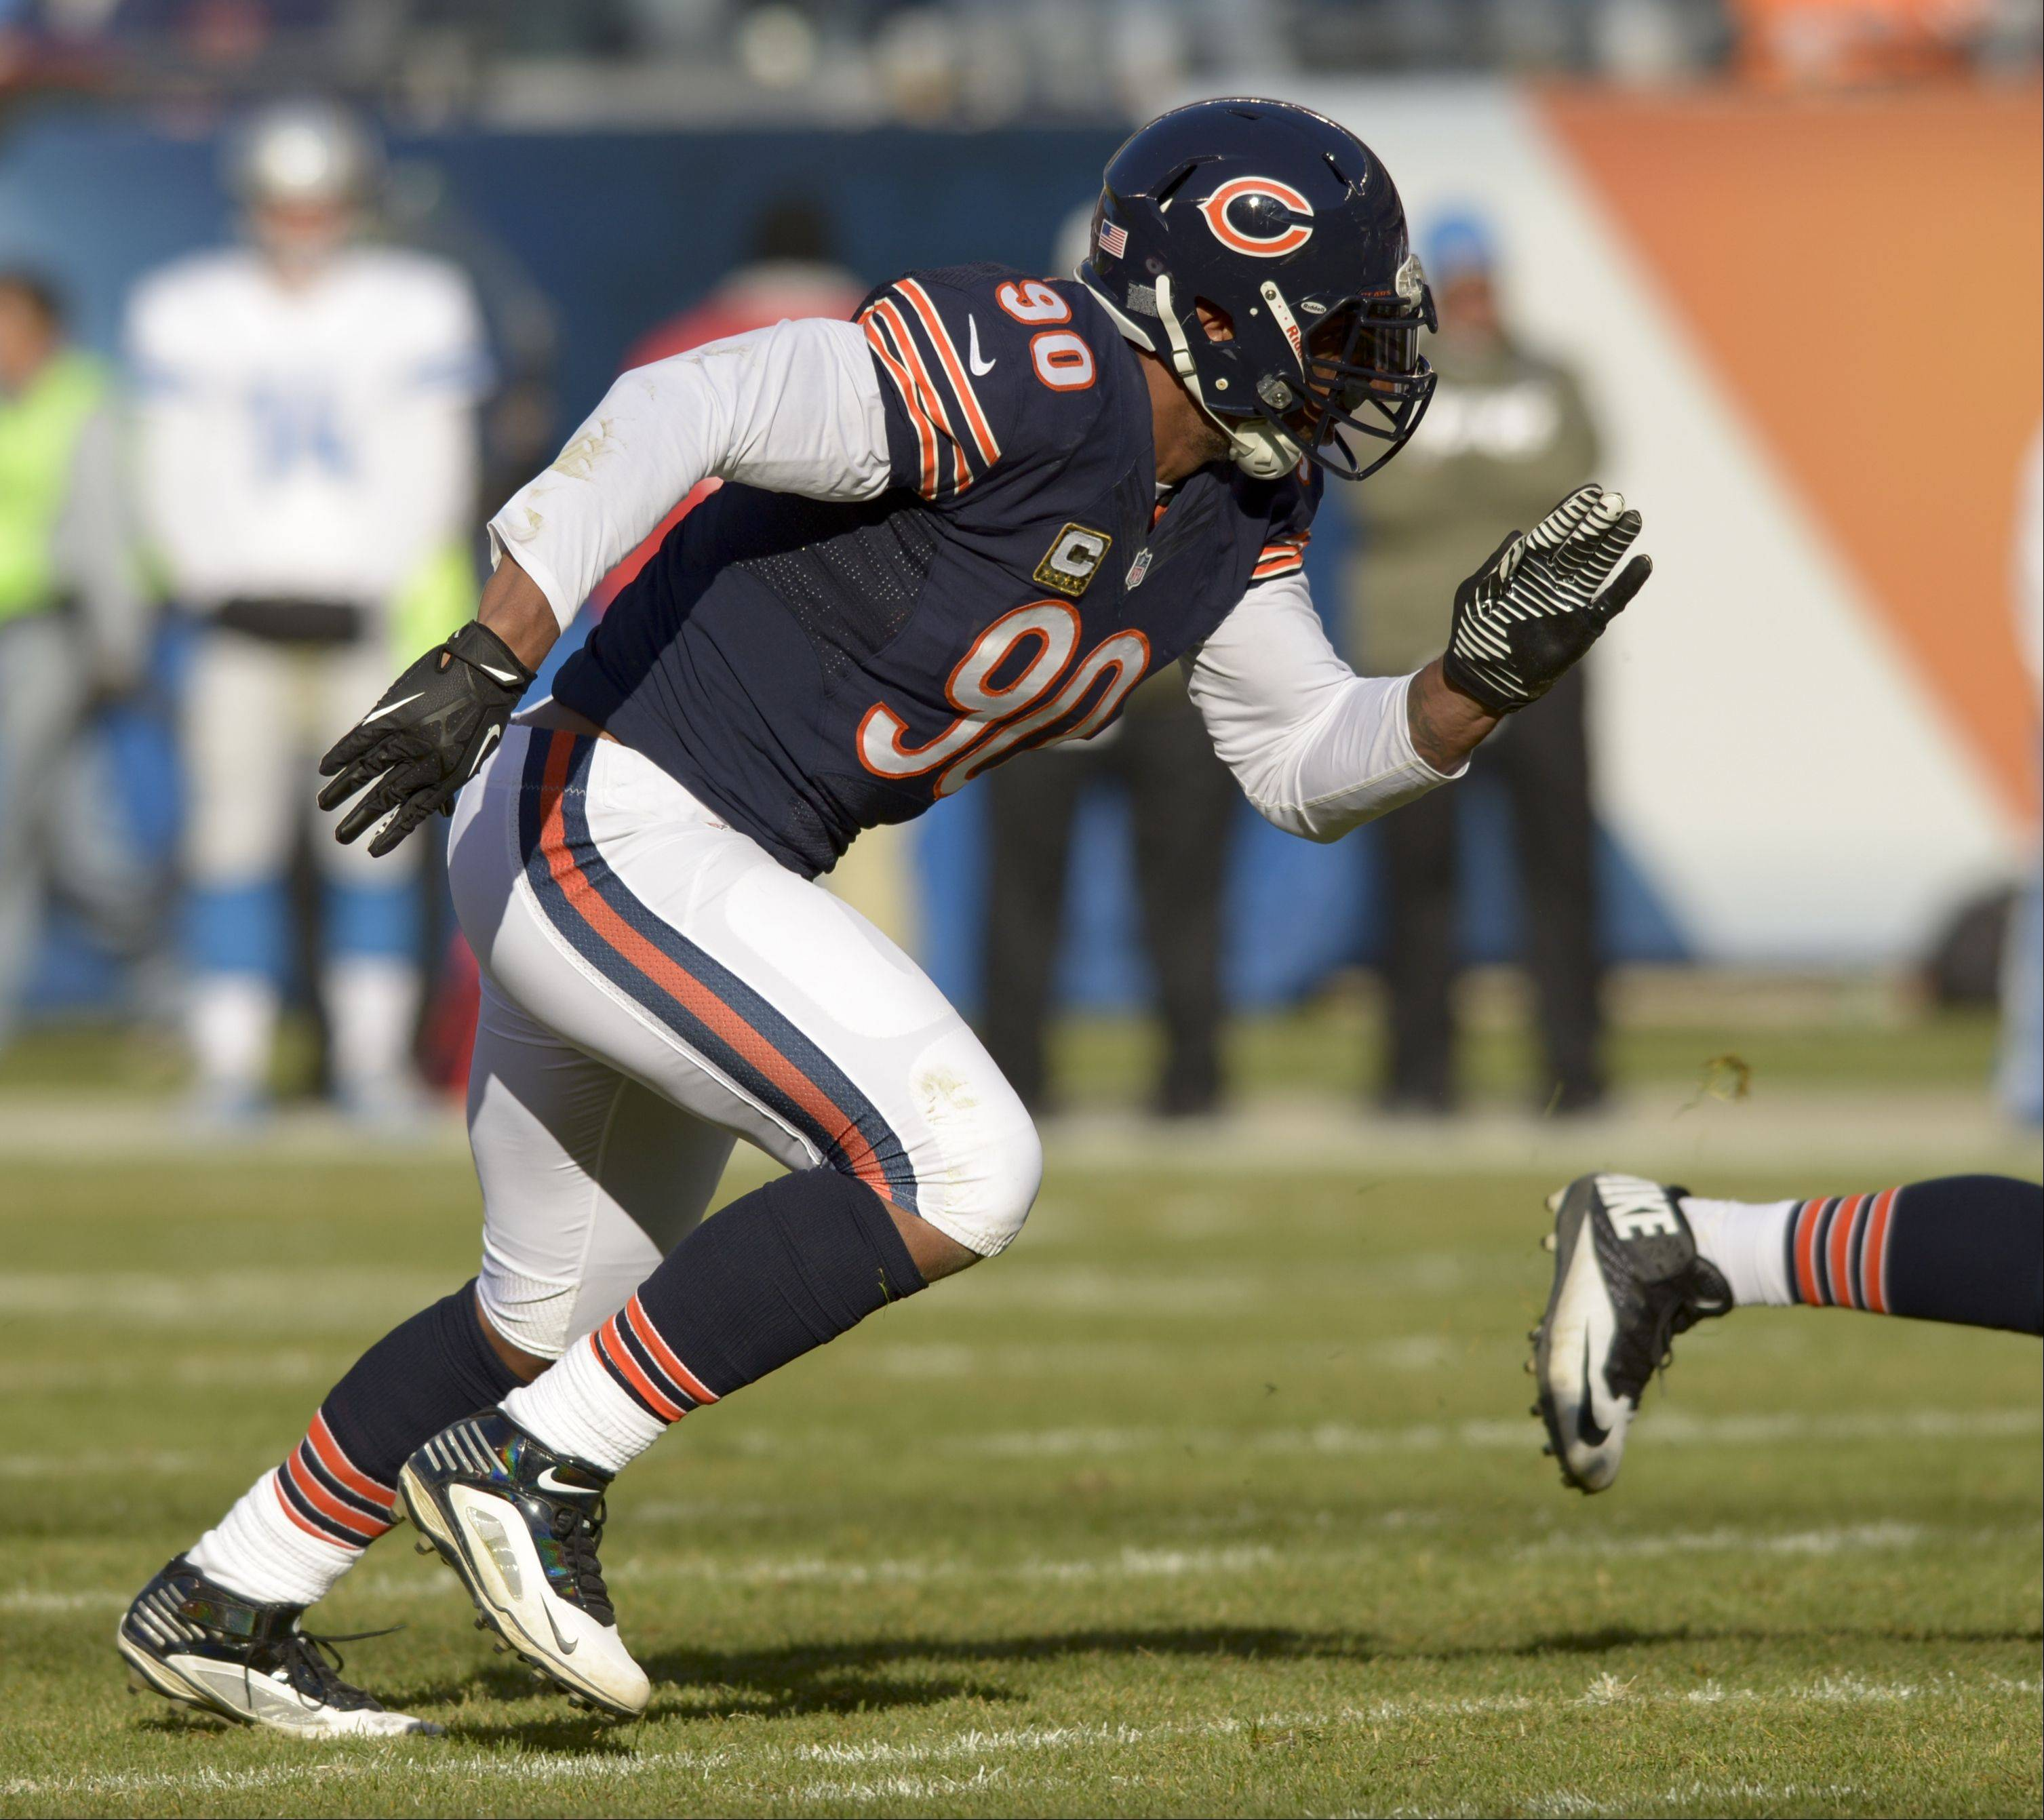 Chicago Bears defensive end Julius Peppers plays against the Detroit Lions at Soldier Field, Sunday November 10th.